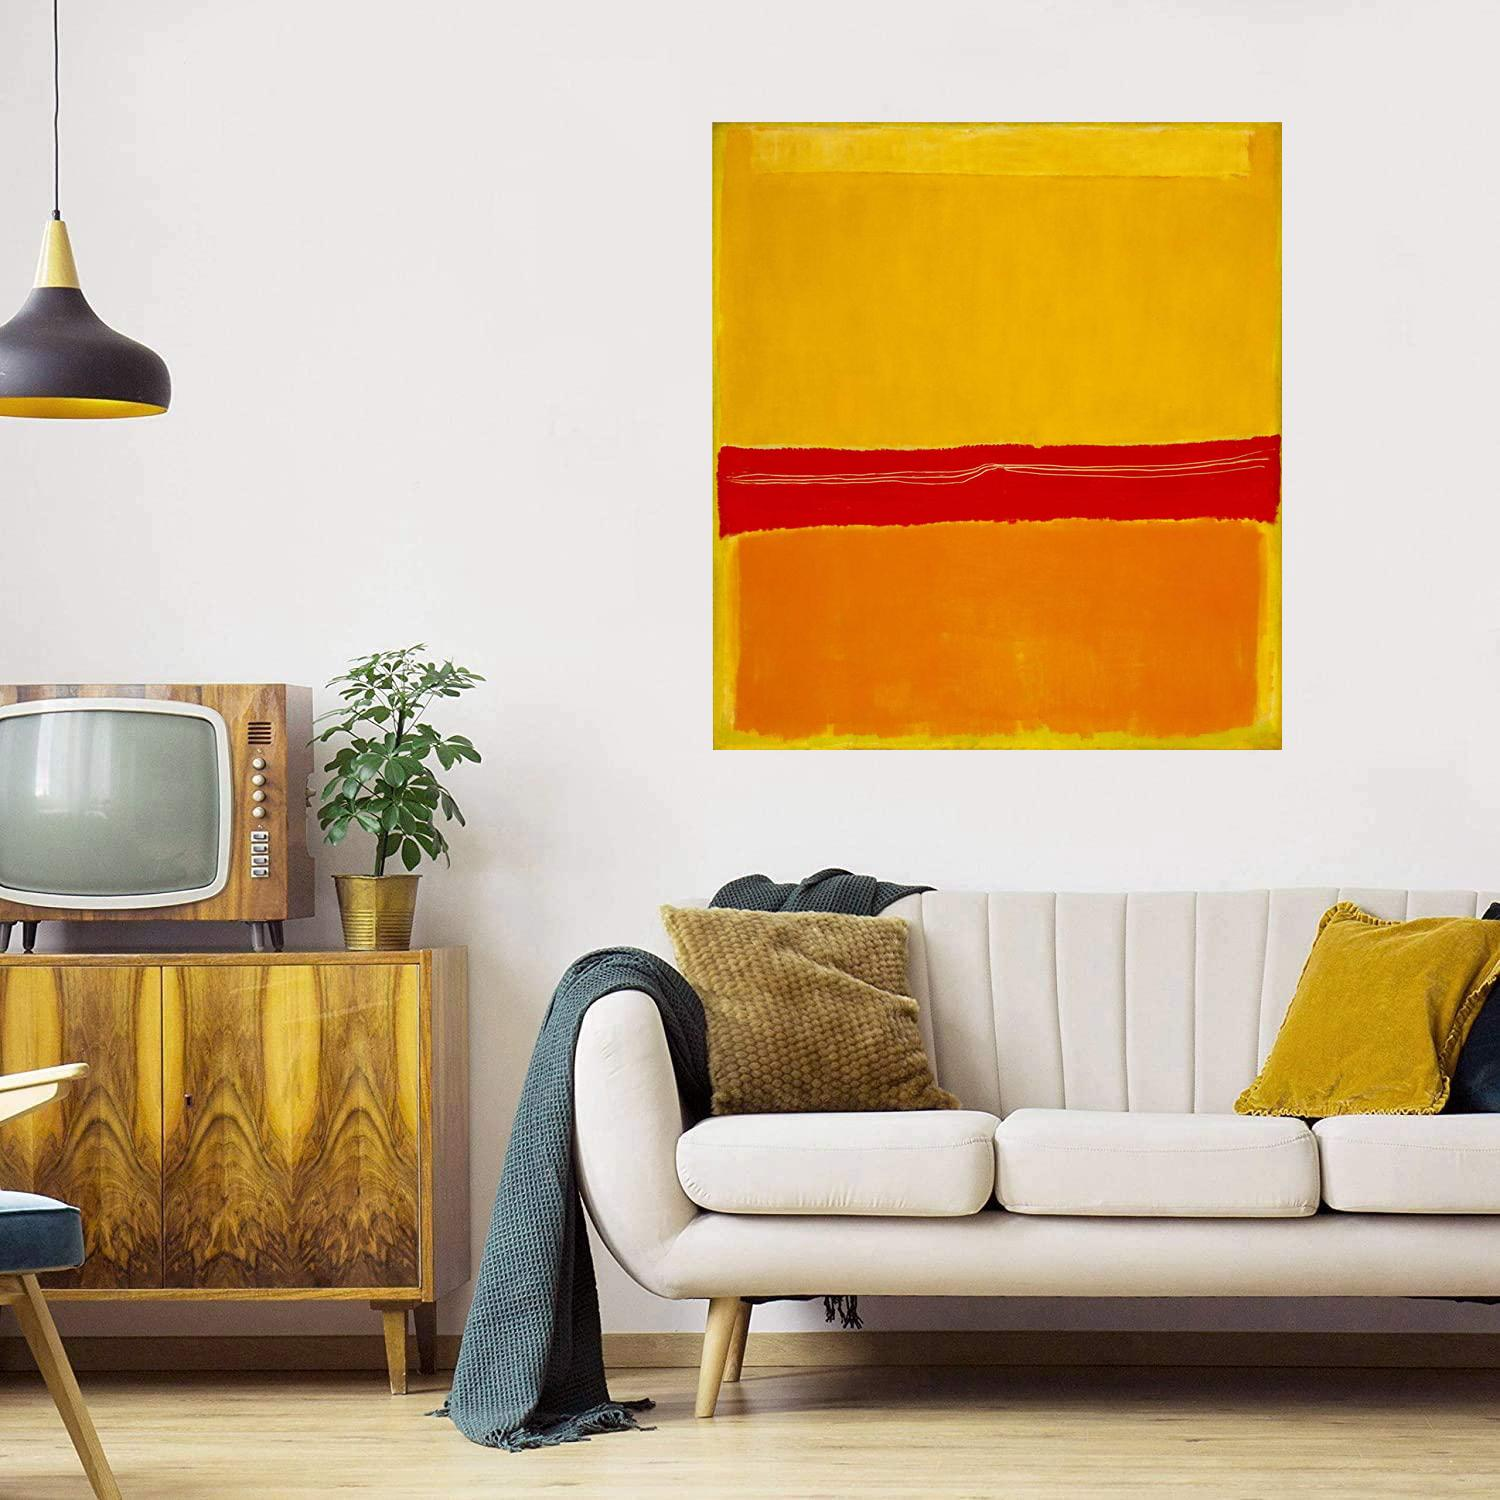 Mark Rothko Number 22 Painting Home Decoration Handcrafts /HD Print Oil Painting On Canvas Wall Art Picture 210226